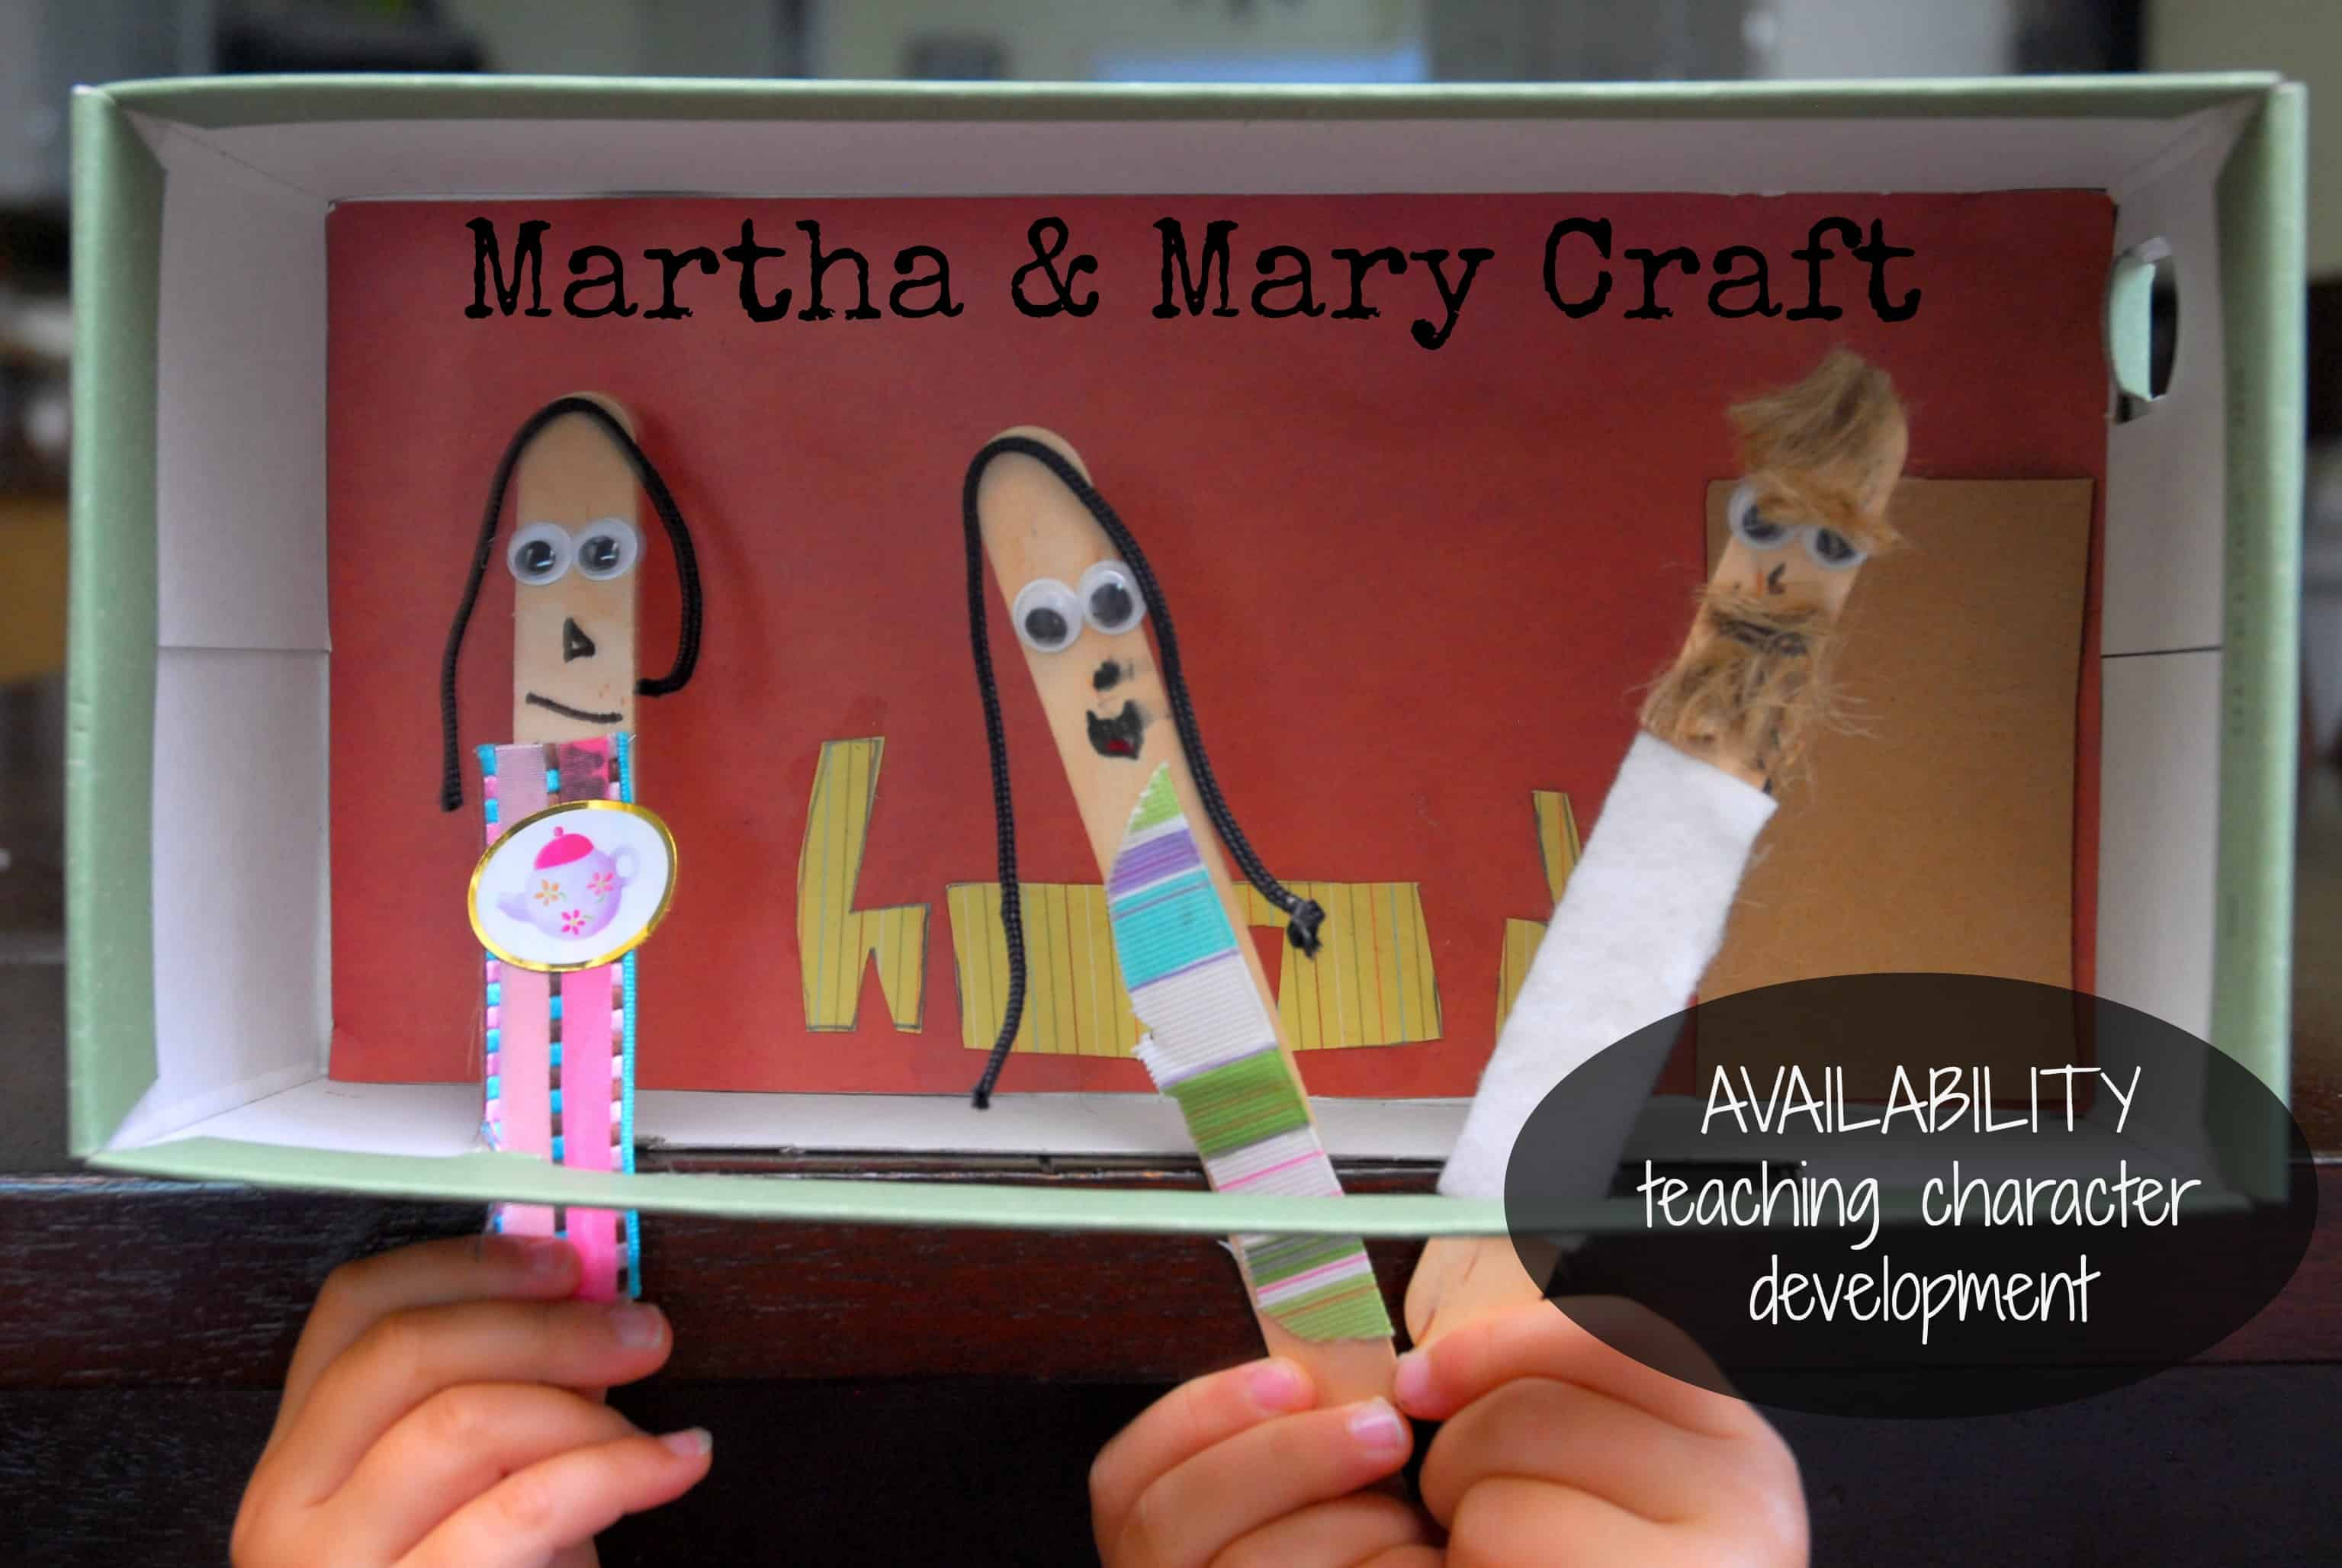 Bible craft for preschoolers - Mary Martha Craft Teaches Availability